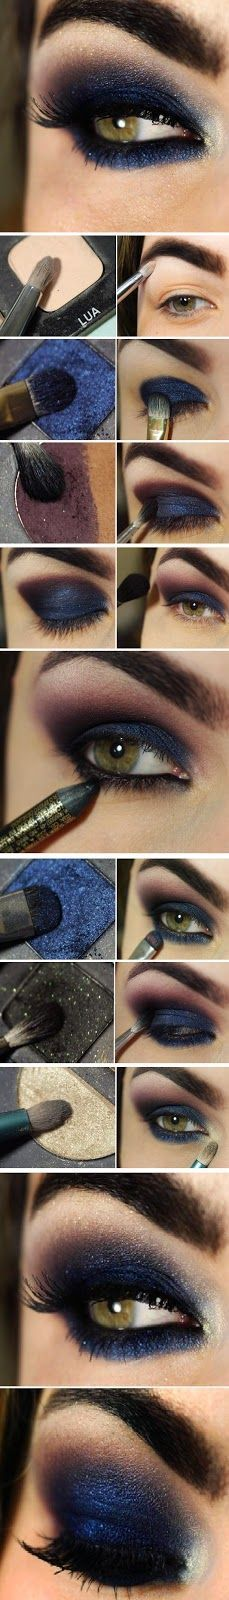 Best Ideas For Makeup Tutorials Picture Description I LOVE this dark blue smokey eye. Especially for brown eyes! - #Makeup https://glamfashion.net/beauty/make-up/best-ideas-for-makeup-tutorials-i-love-this-dark-blue-smokey-eye-especially-for-brown-eyes/